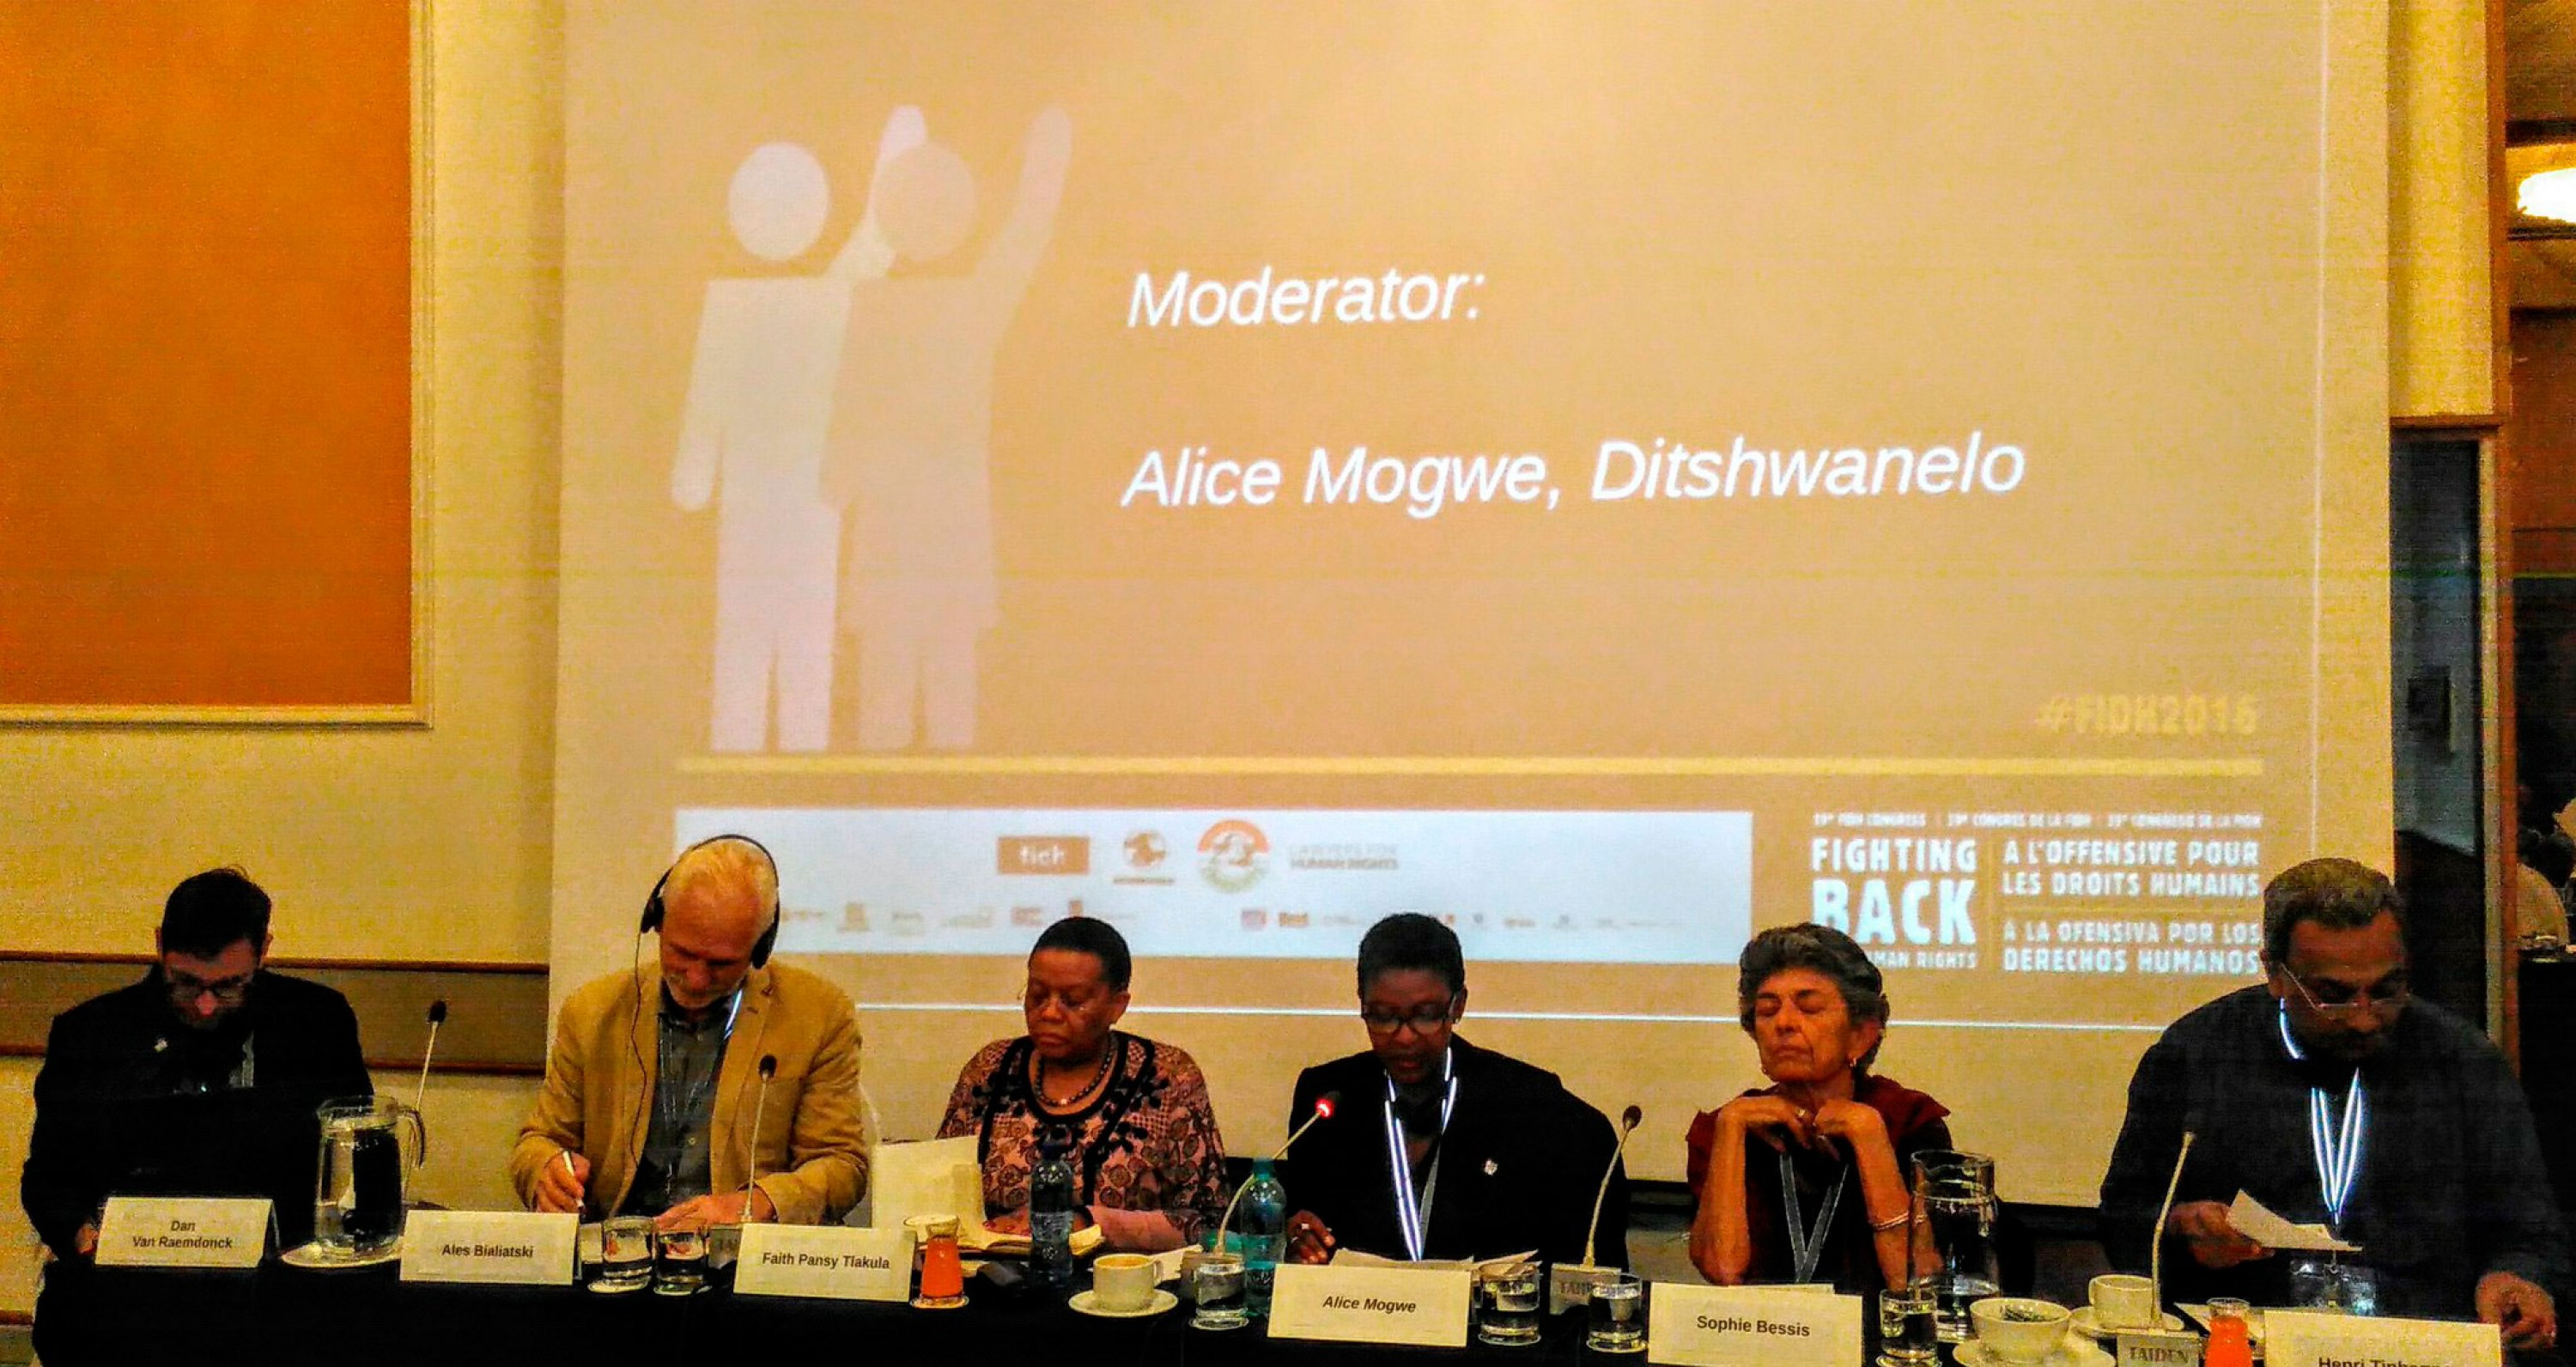 Ales Bialiatski and his colleagues at the 39th FIDH Congress in Johannesburg, South Africa. 23 August 2015